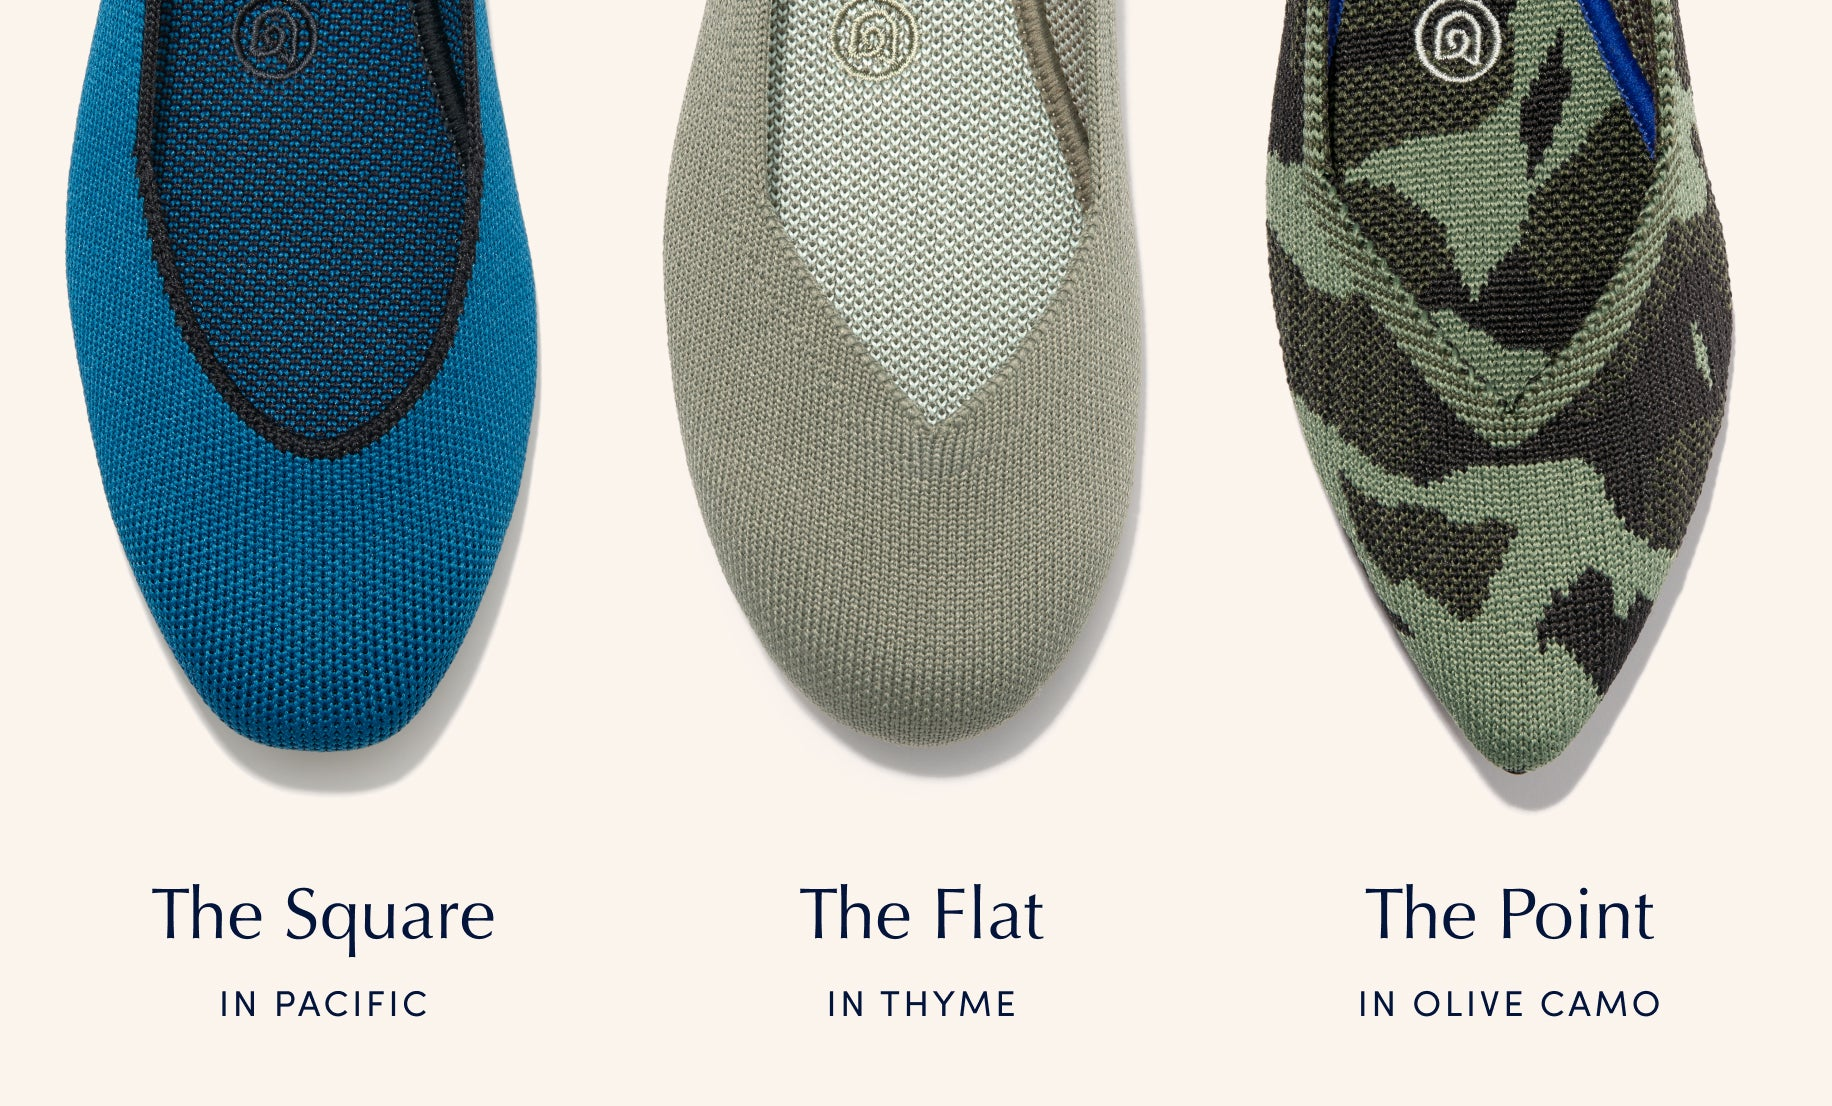 Image showing The Square in Pacific, The Flat in Thyme and The Point in Olive Camo, with the product name listed beneath each shoe.